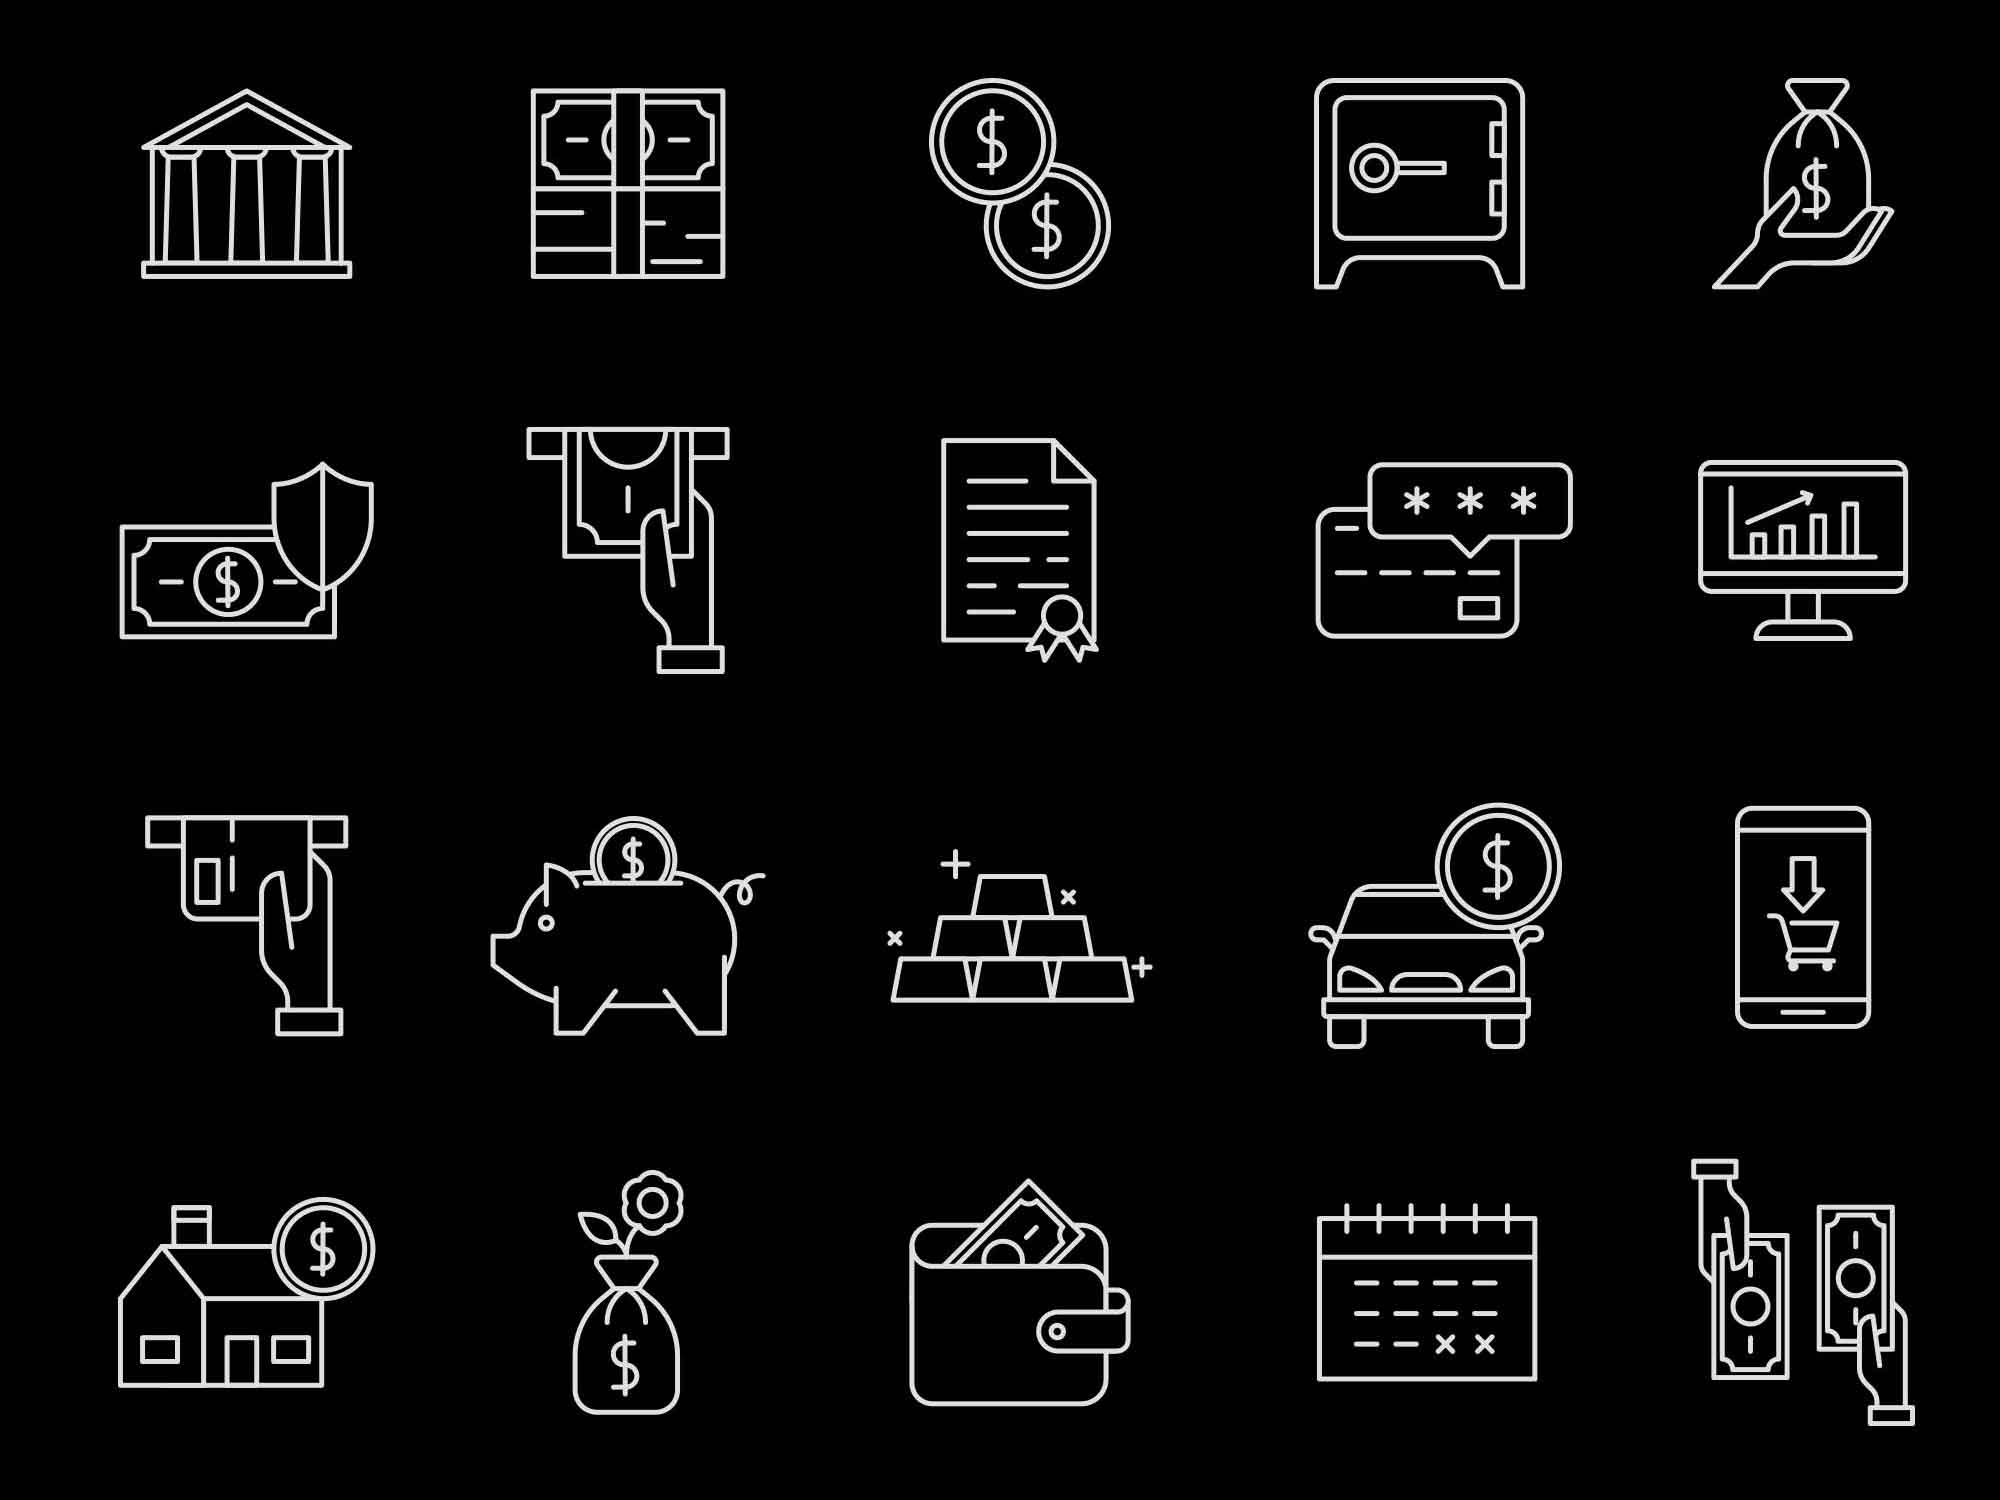 Banking Vector Icons 2